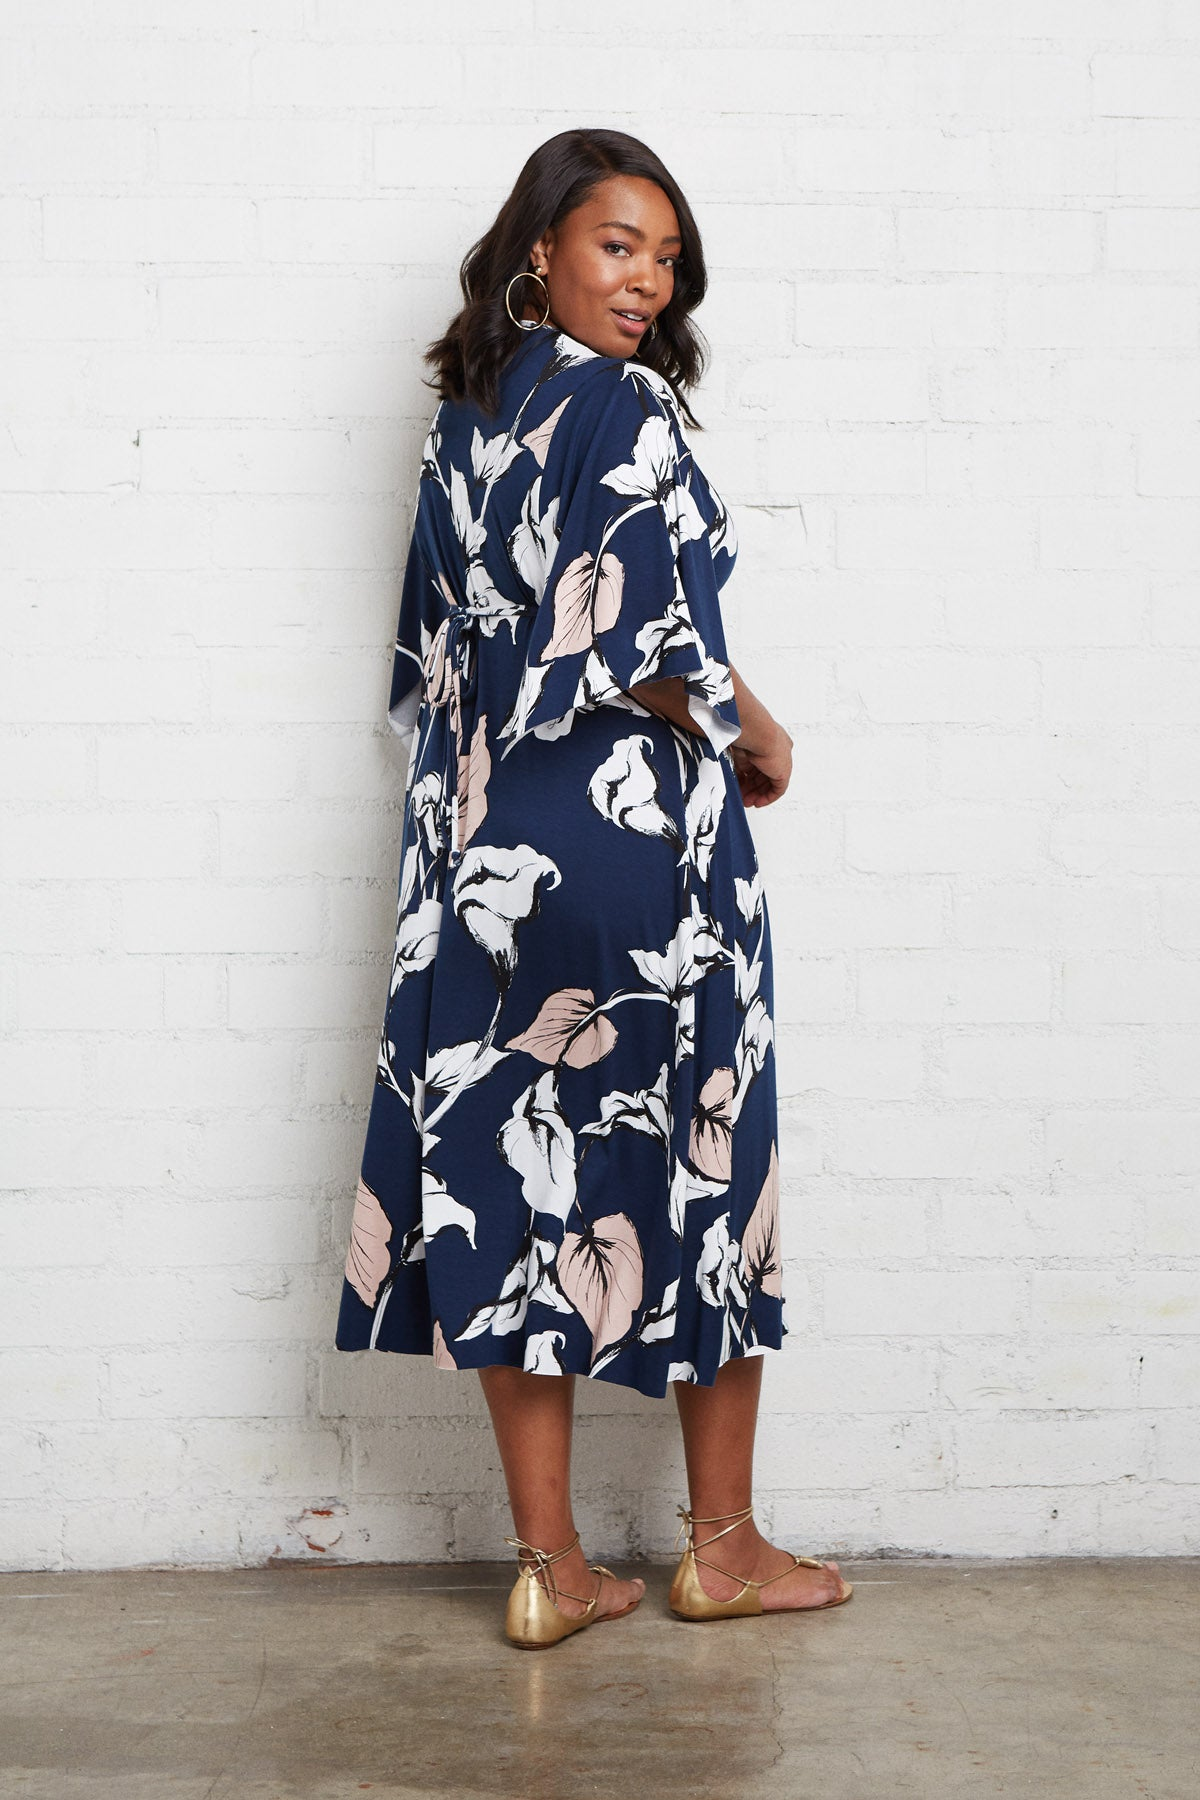 Mid-Length Caftan Dress - Navy Calla Print, Plus Size